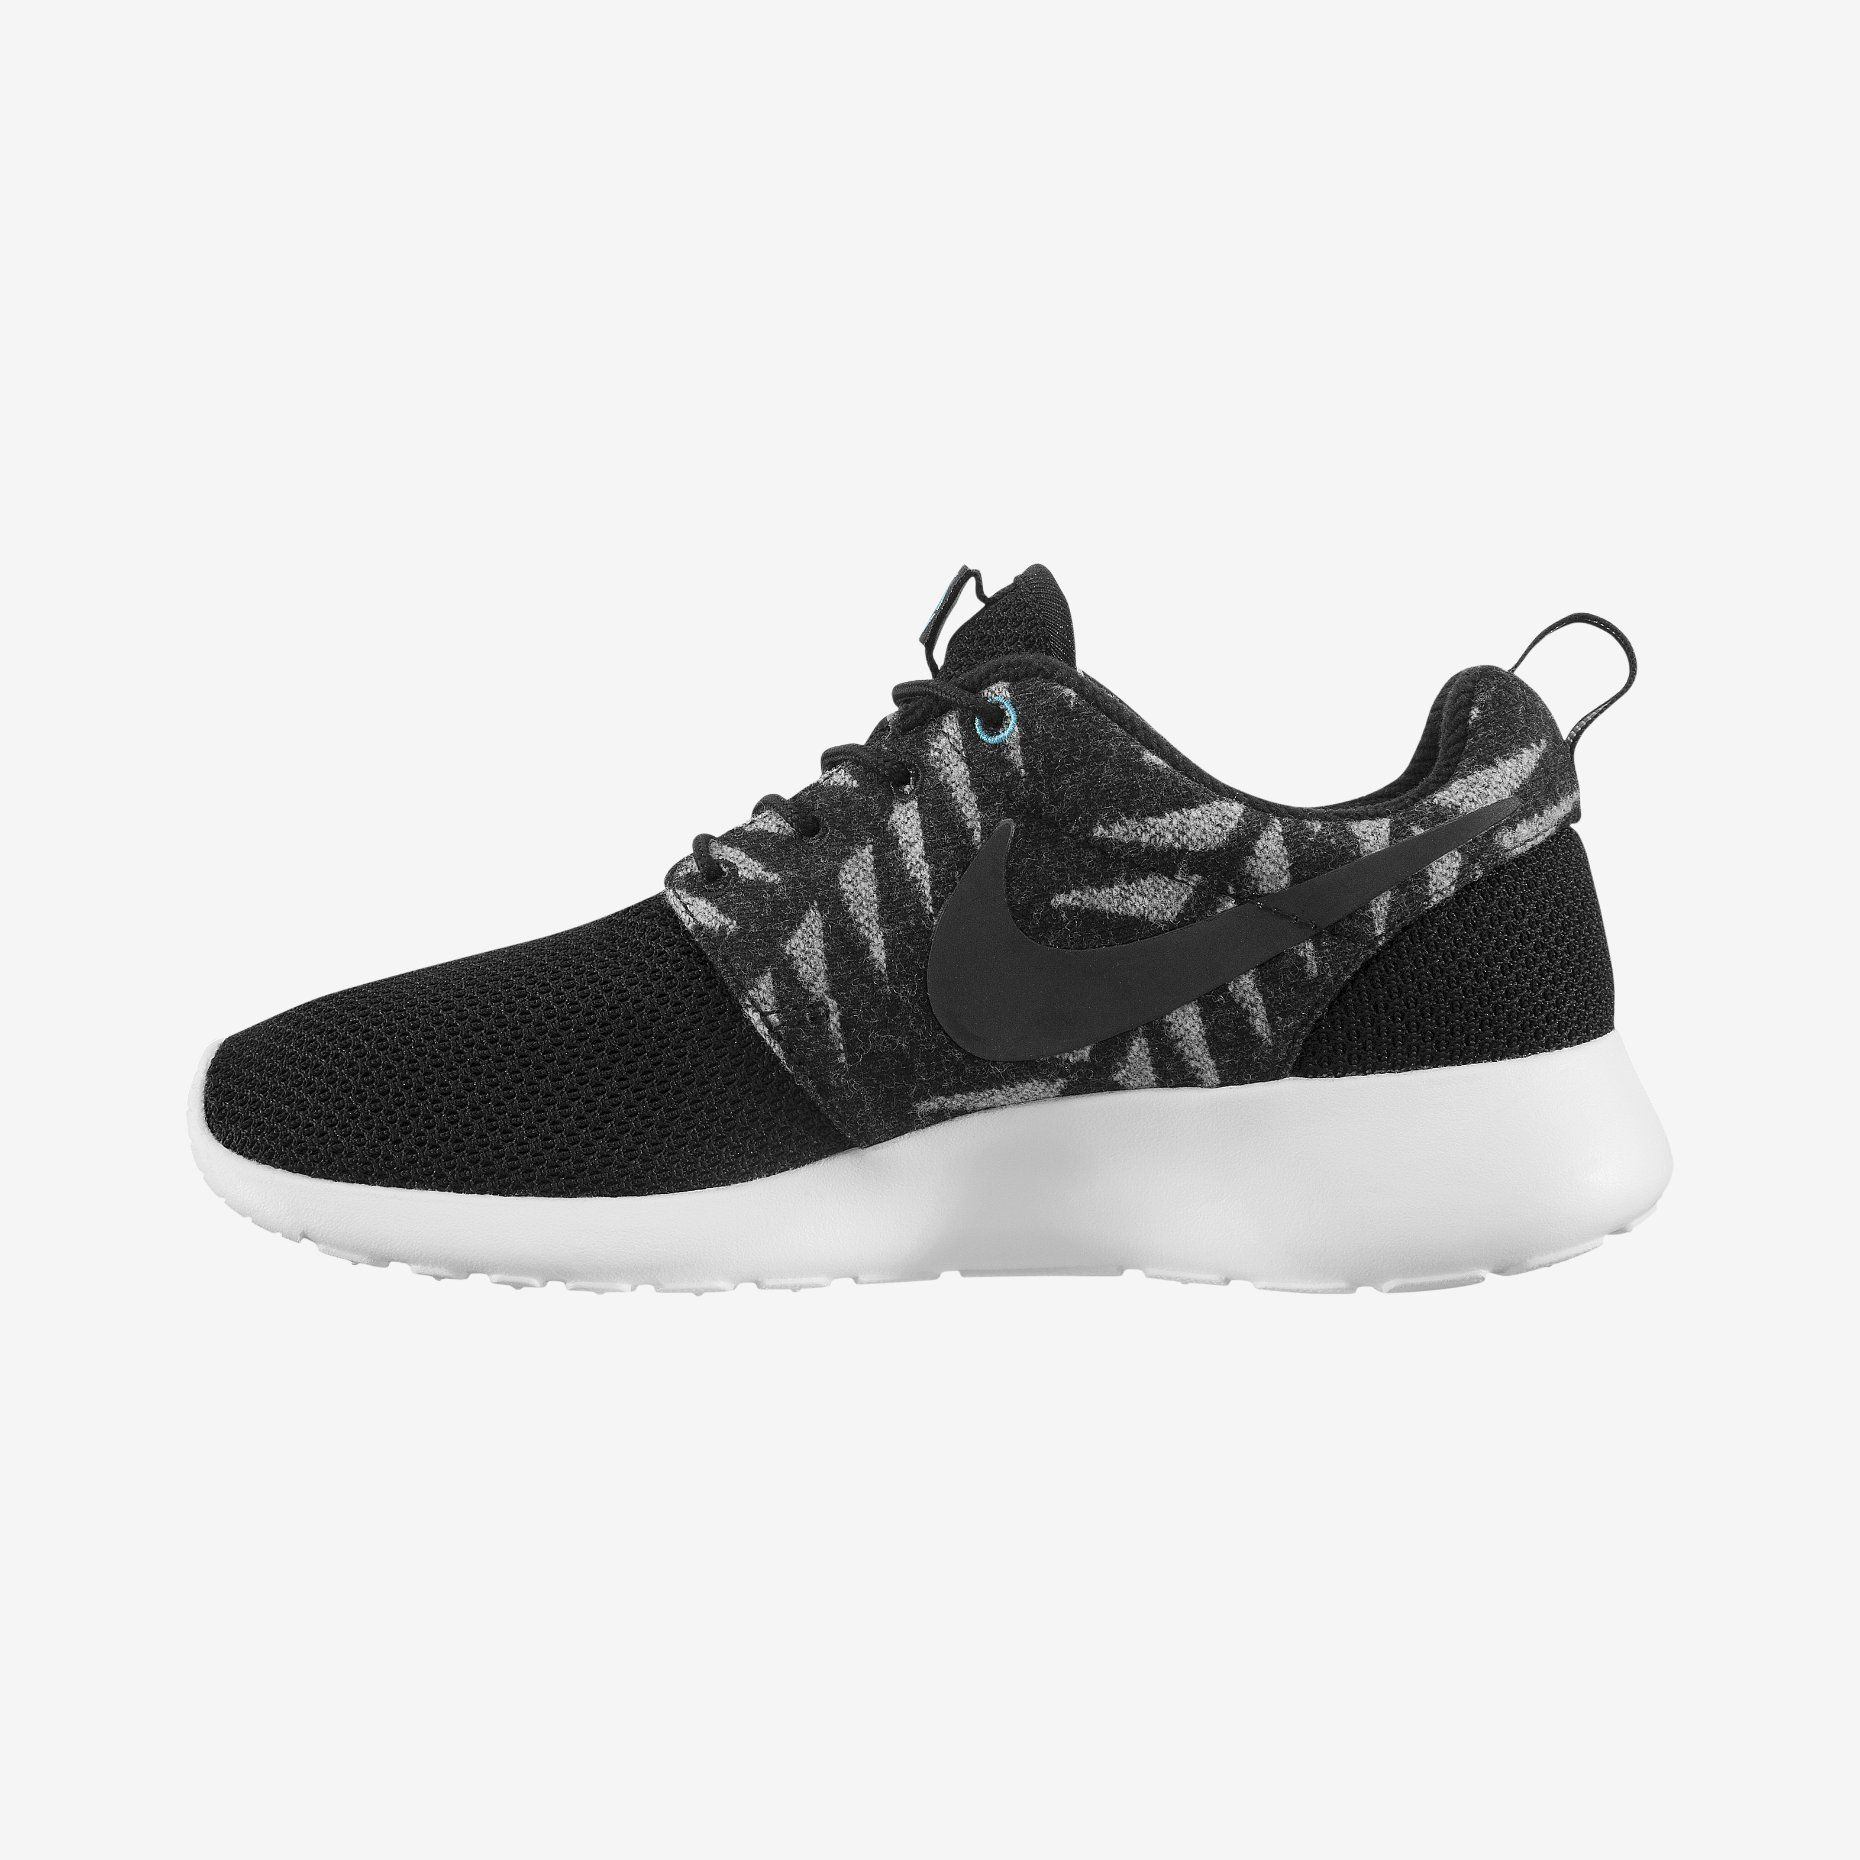 Nike N7 Roshe Run Women's Shoe with Pendleton® wool overlay.